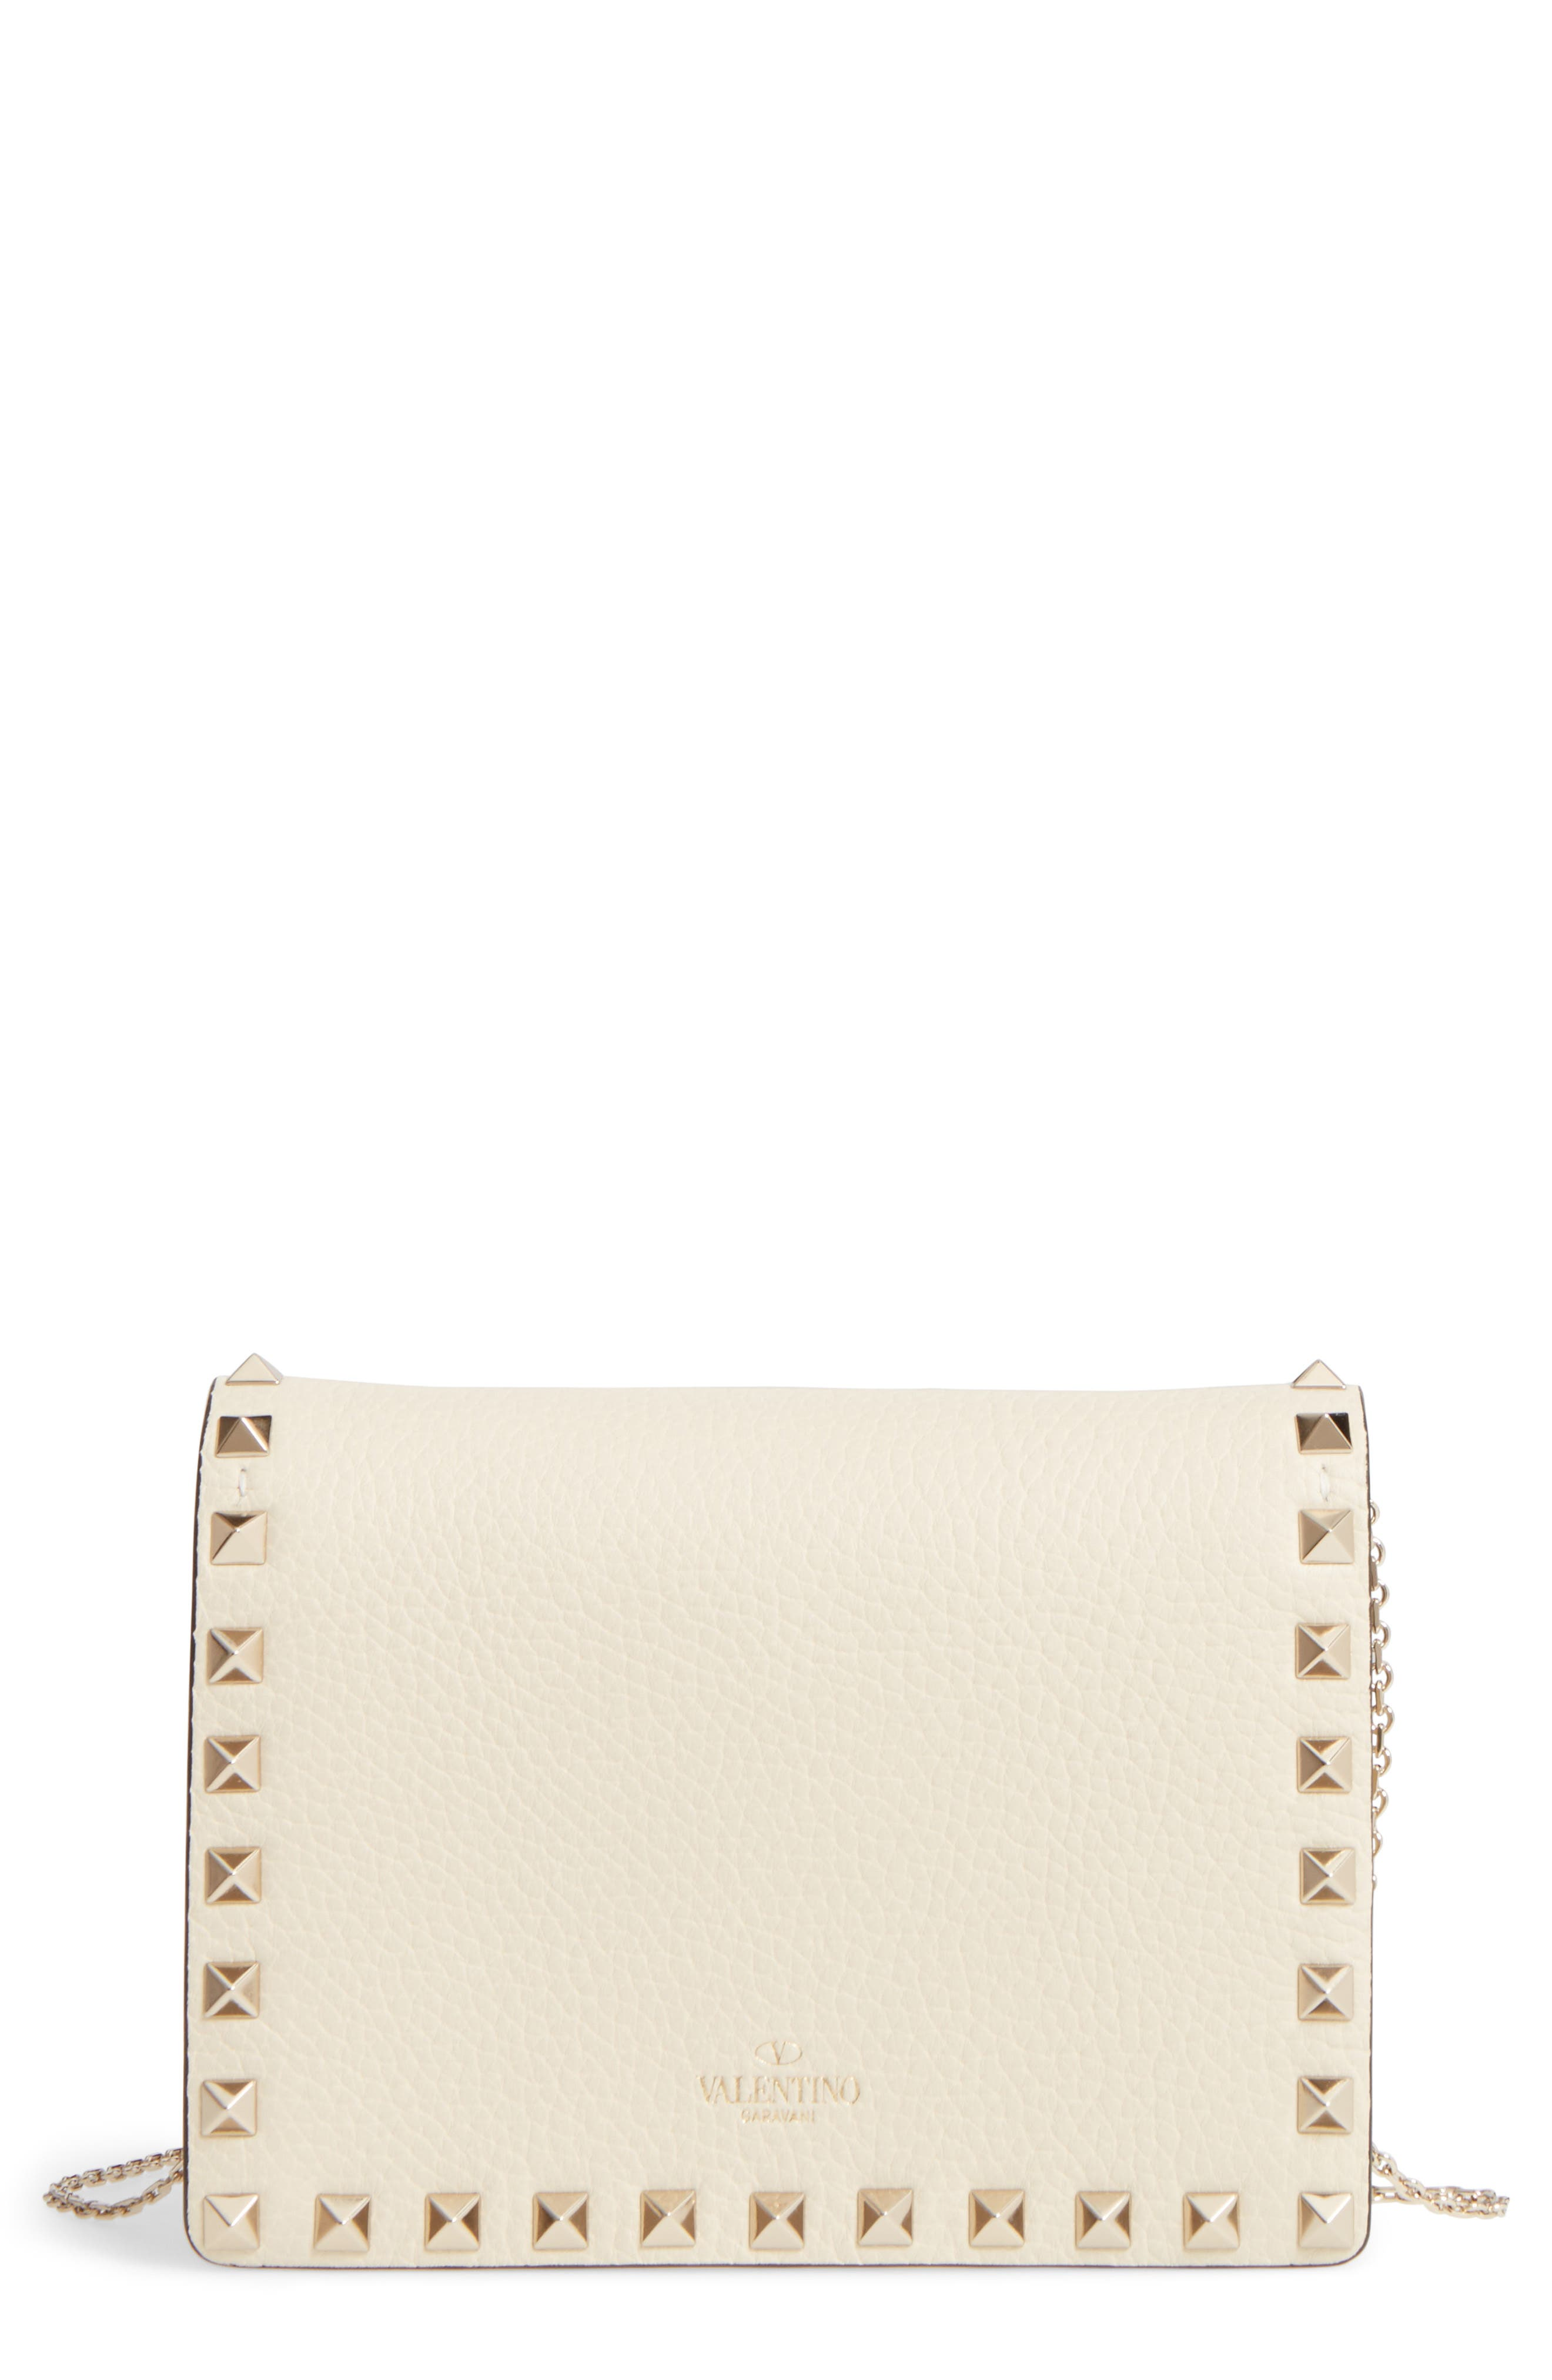 Valentino Mini Rockstud Triple Compartment Leather Clutch